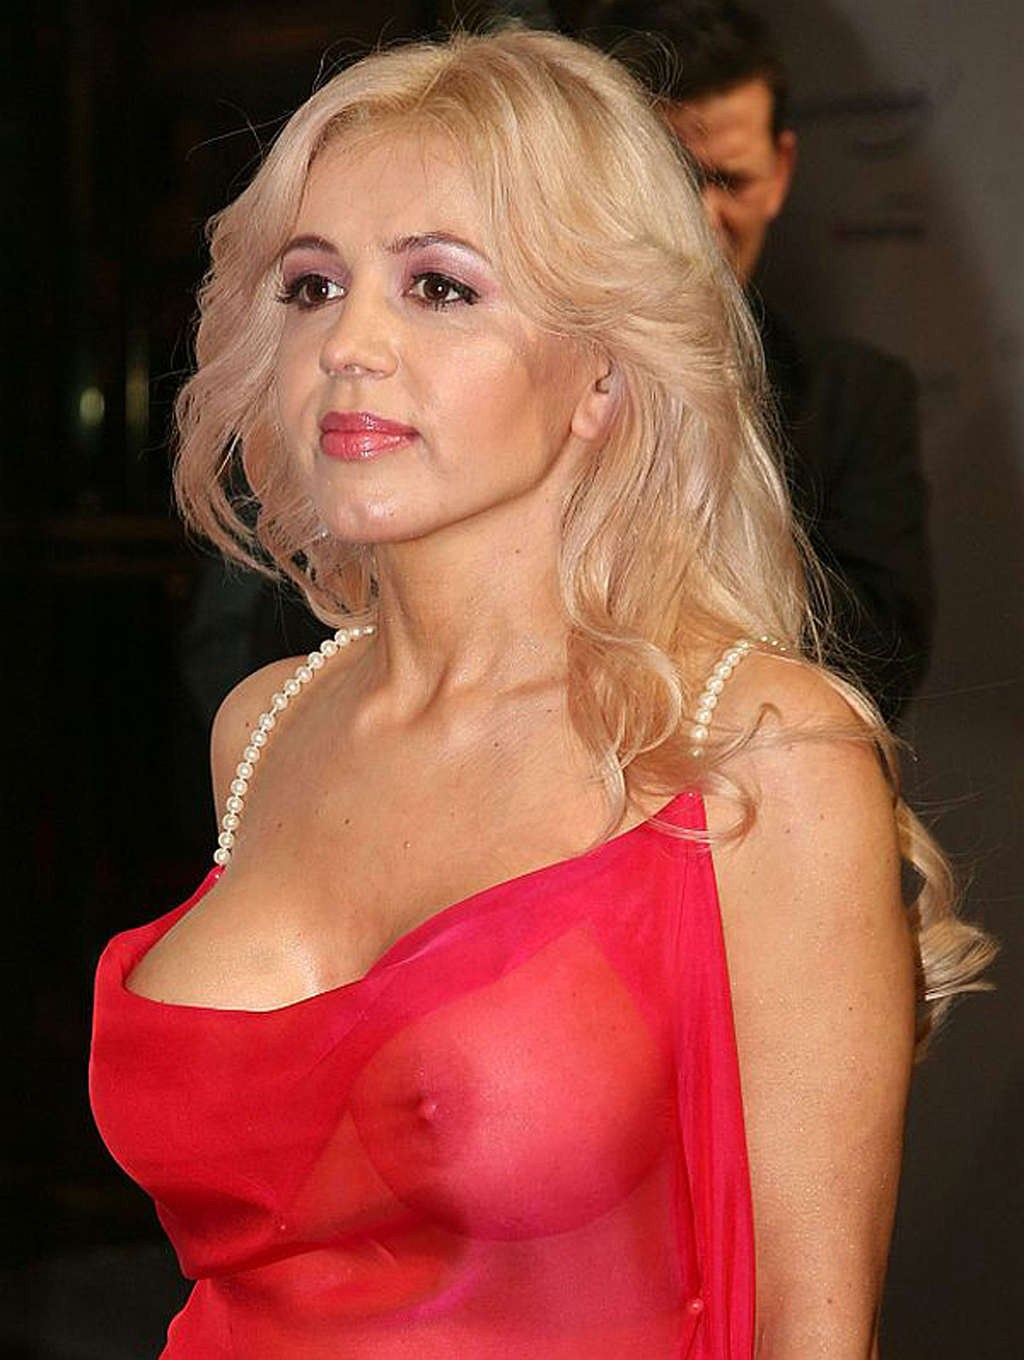 Davorka Tovilo revealing her big boobs in her transparent dress in a function